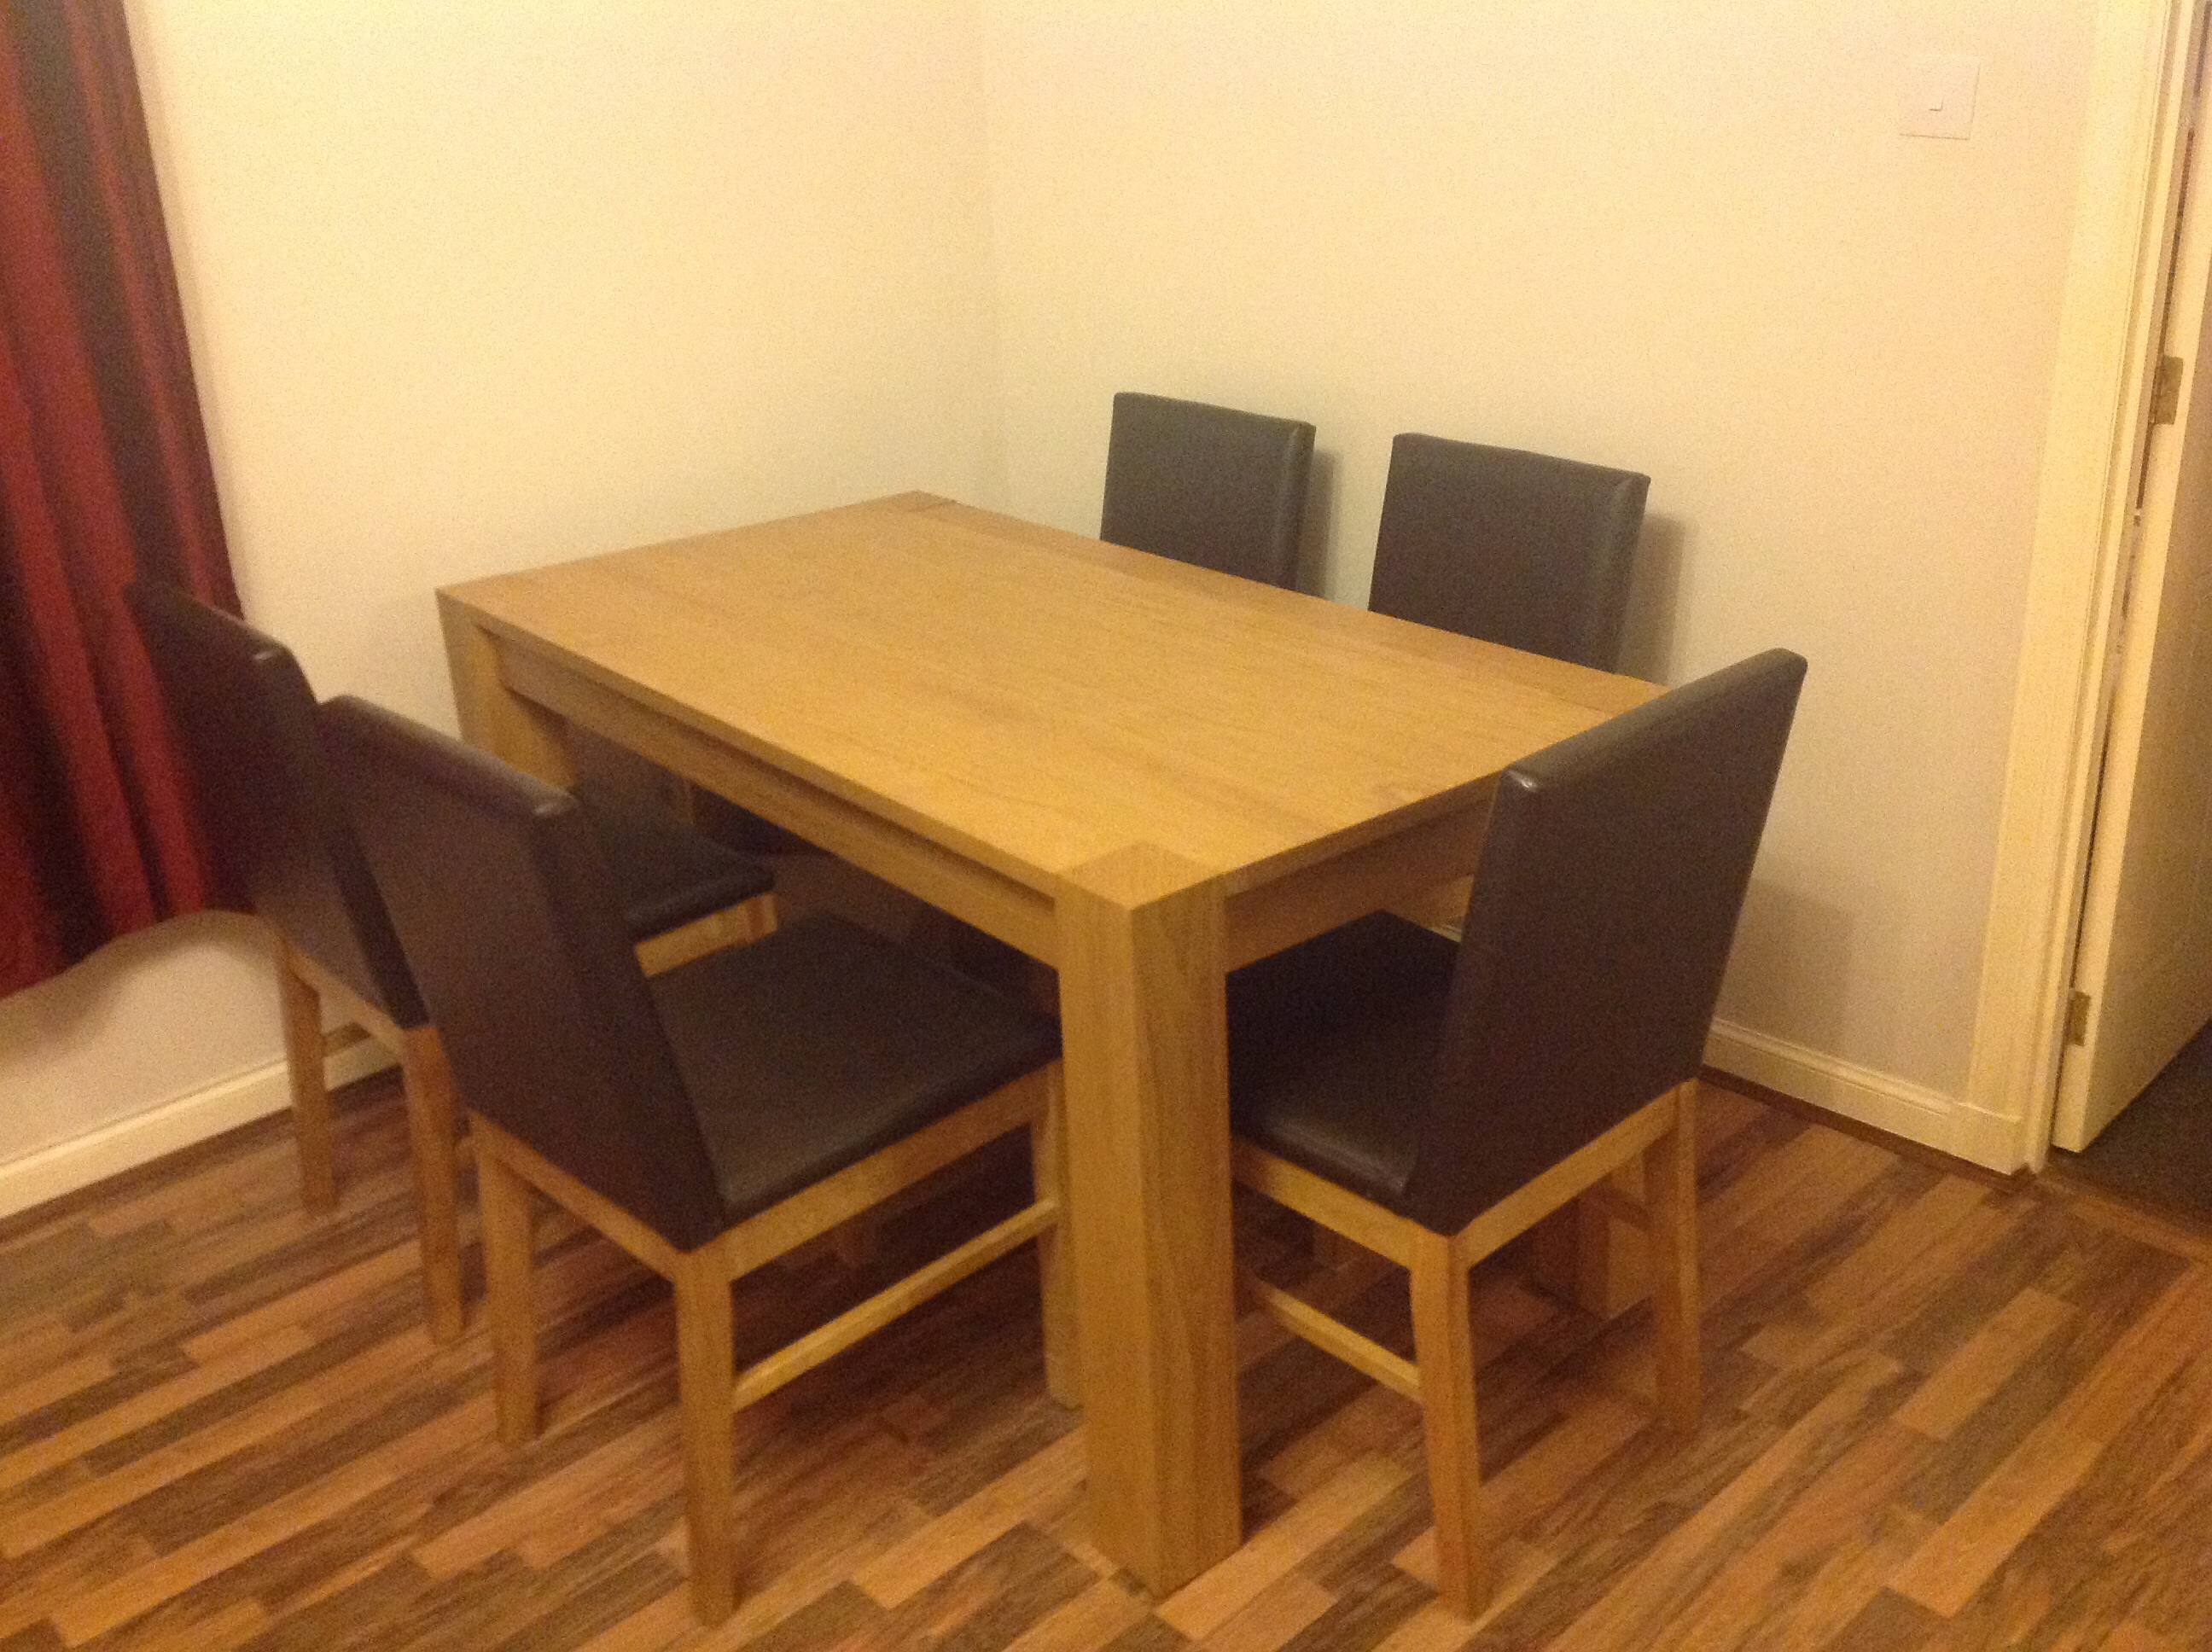 debenhams dining table and chairs. Black Bedroom Furniture Sets. Home Design Ideas